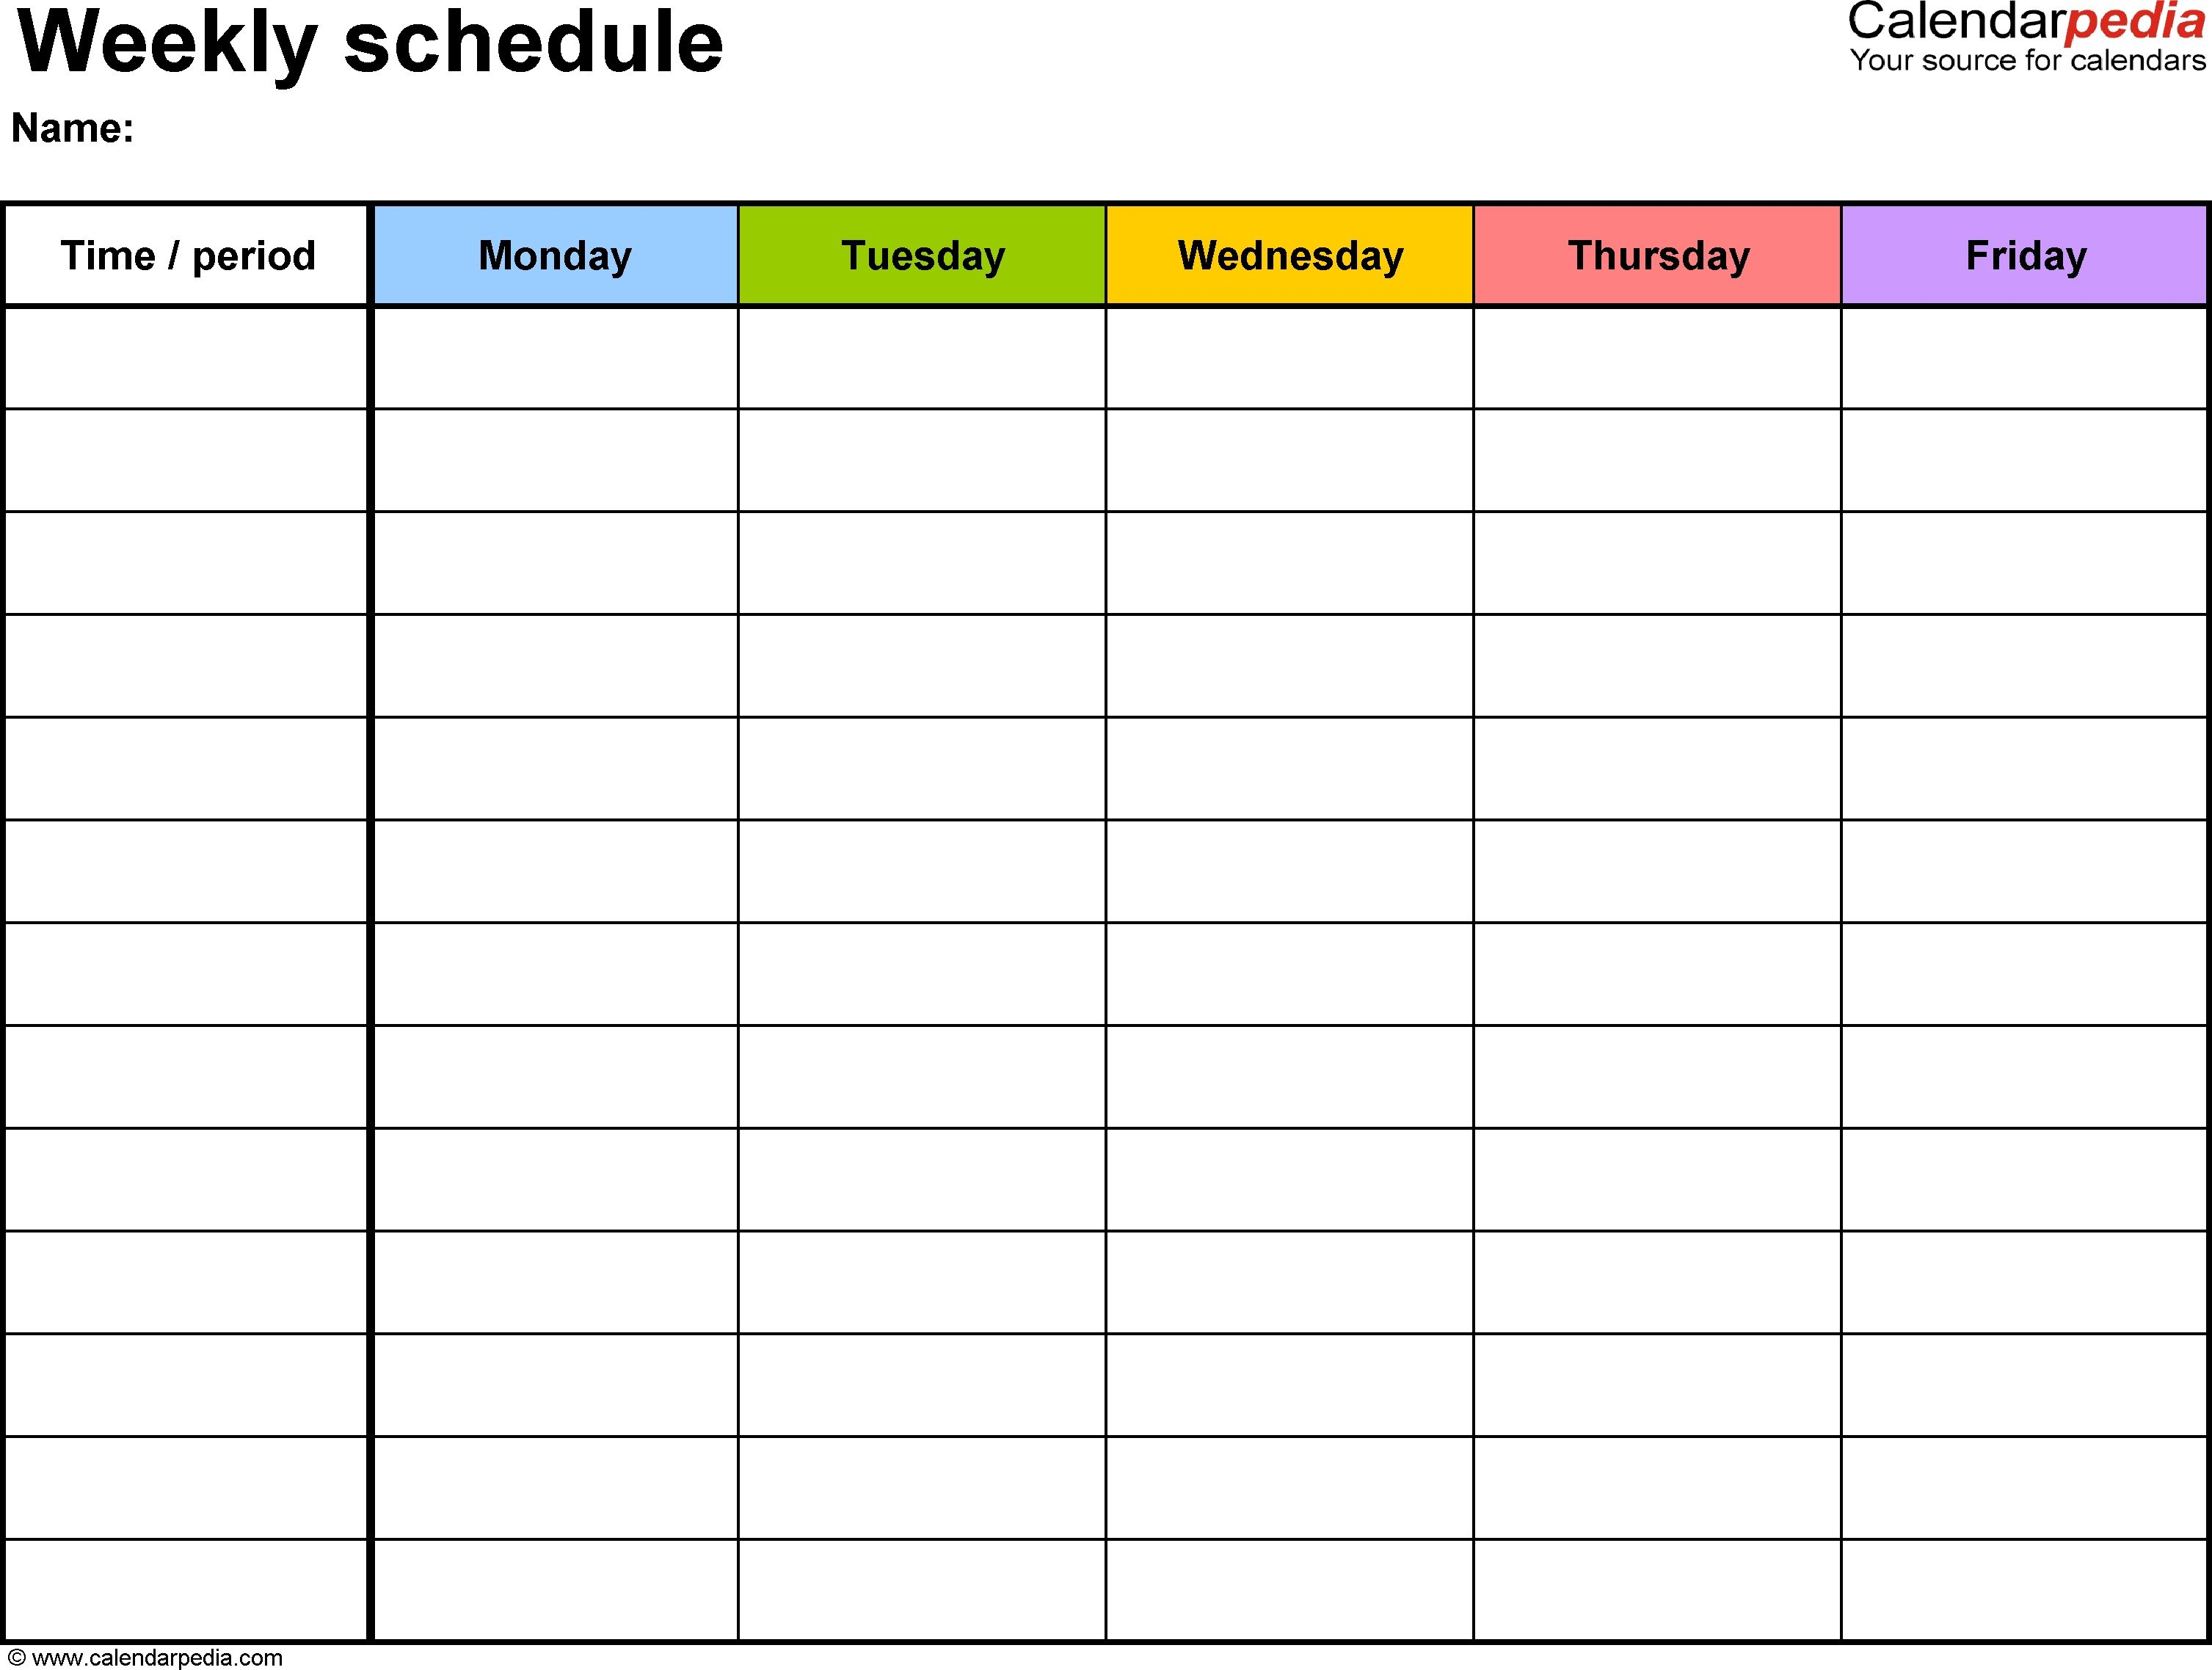 Weekly Calendar Template With Times Blank Weekly Calendar Weekly Calendar Template Excel Calendar Template Weekly calendar template with times